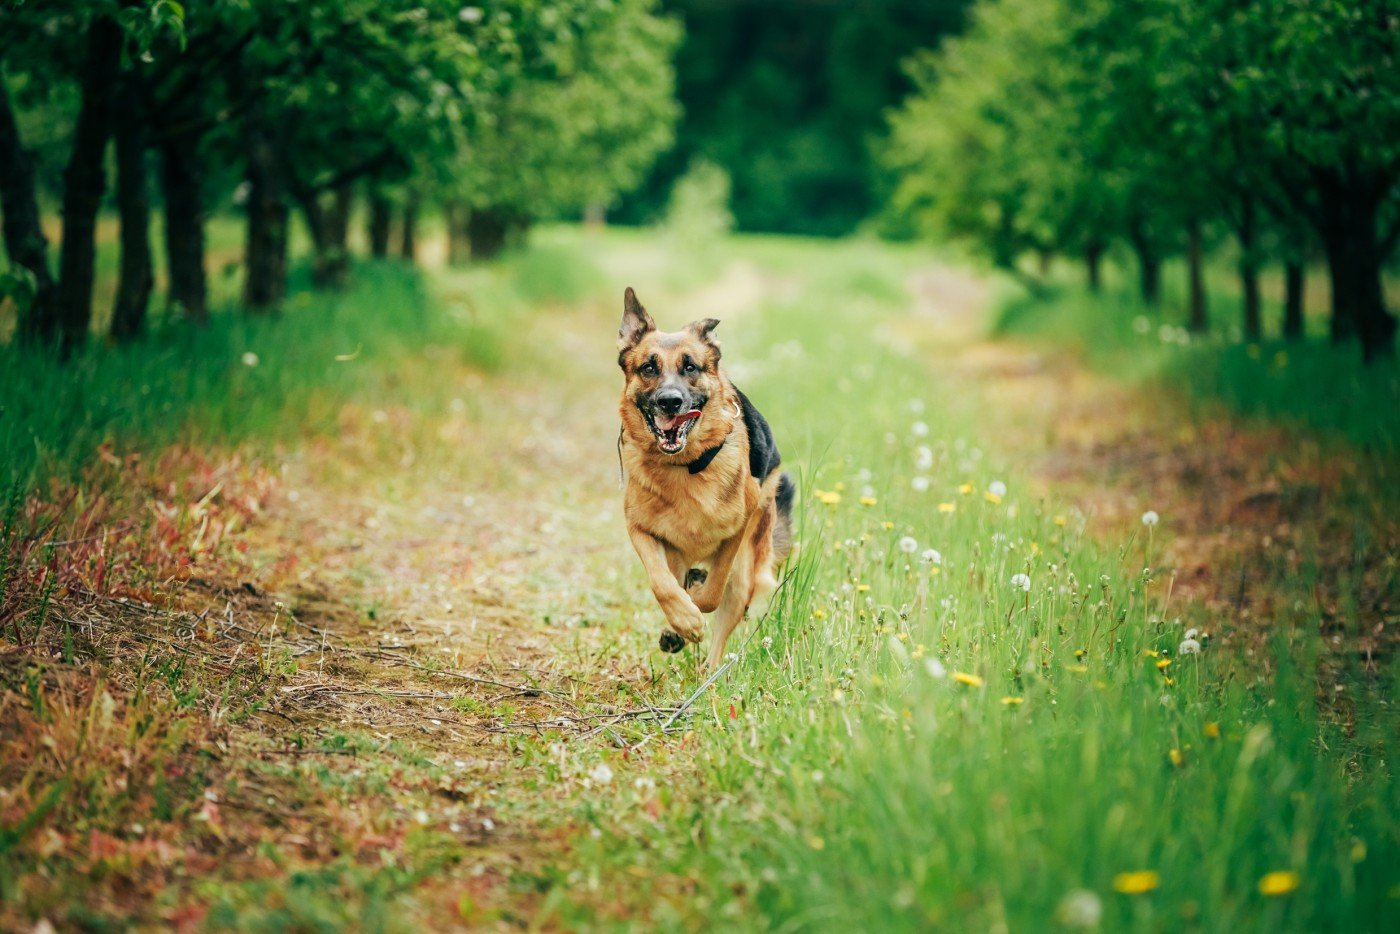 dogs with ALS-like disease